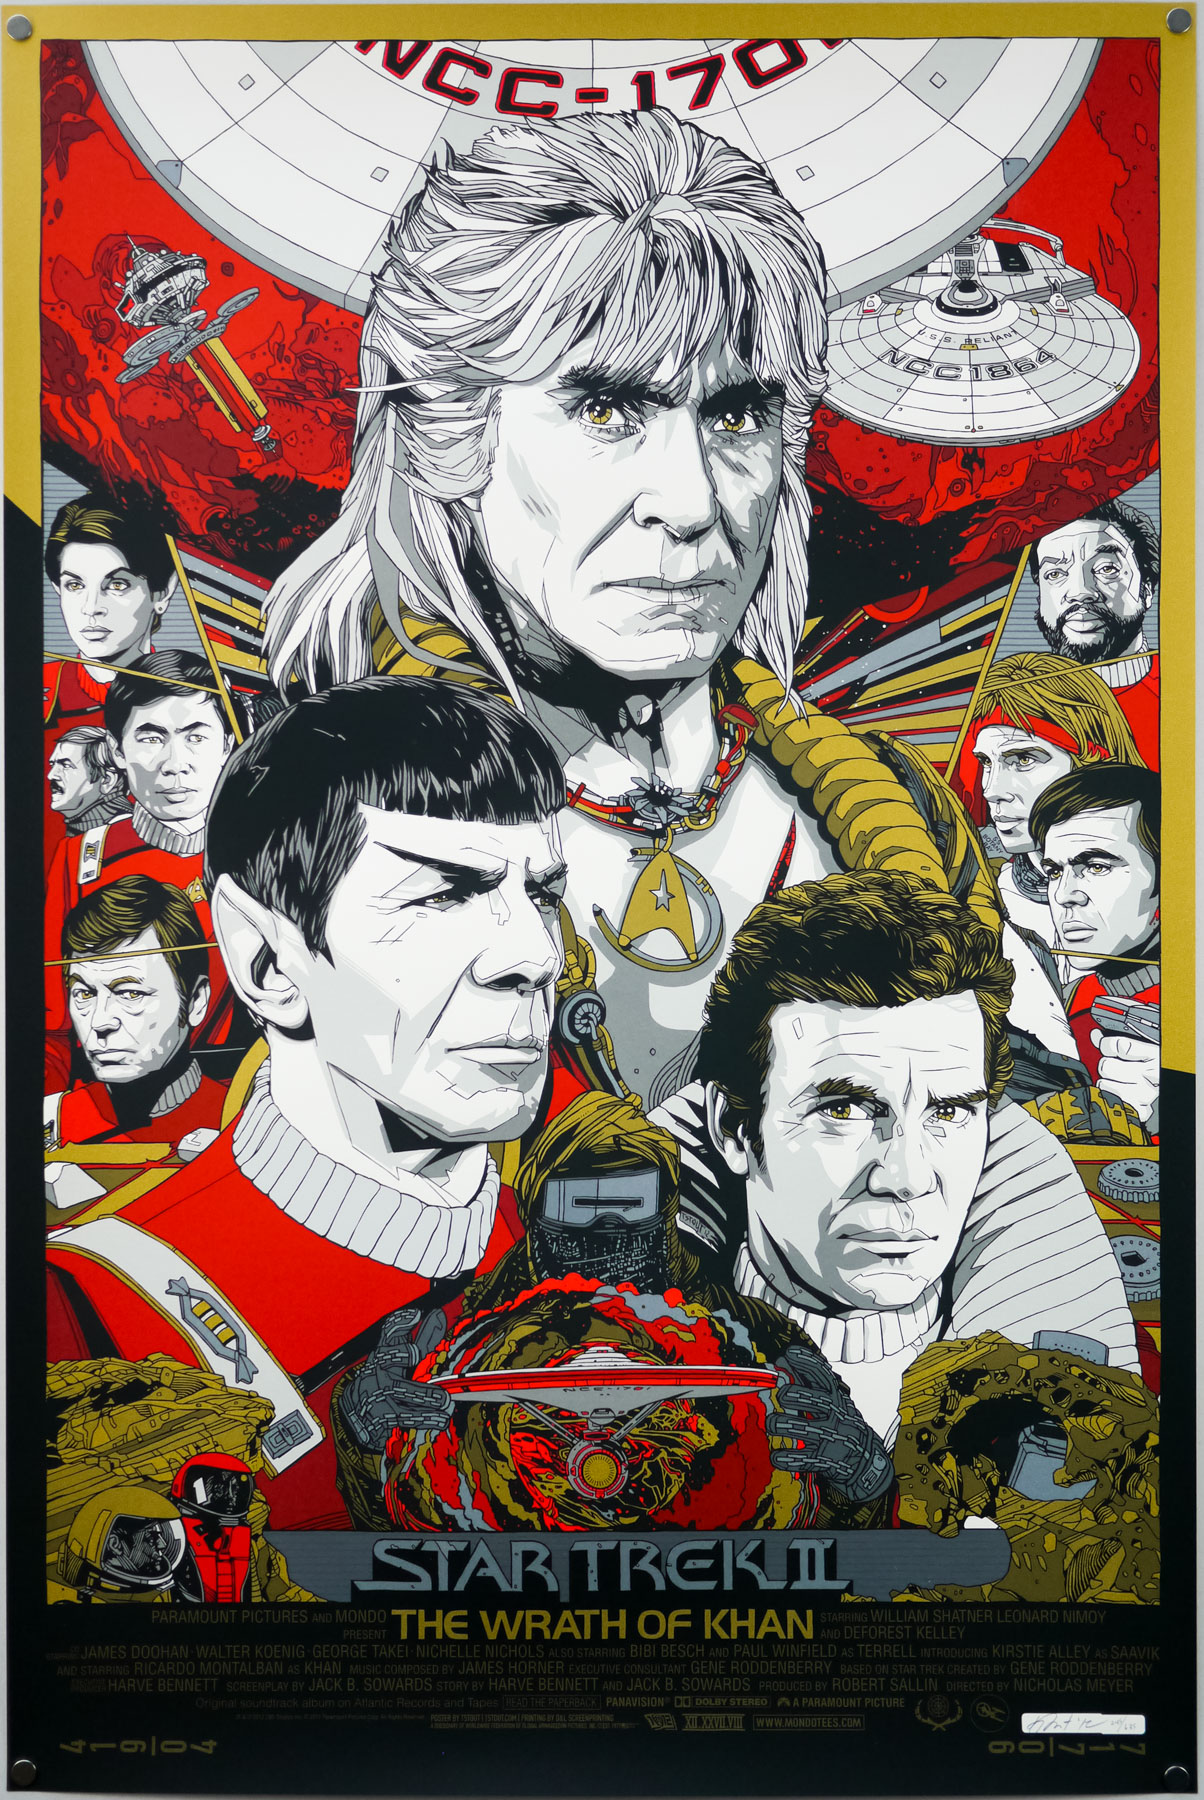 Tyler Stout's screen print for Star Trek II The Wrath of Khan (1982). This is the regular version.